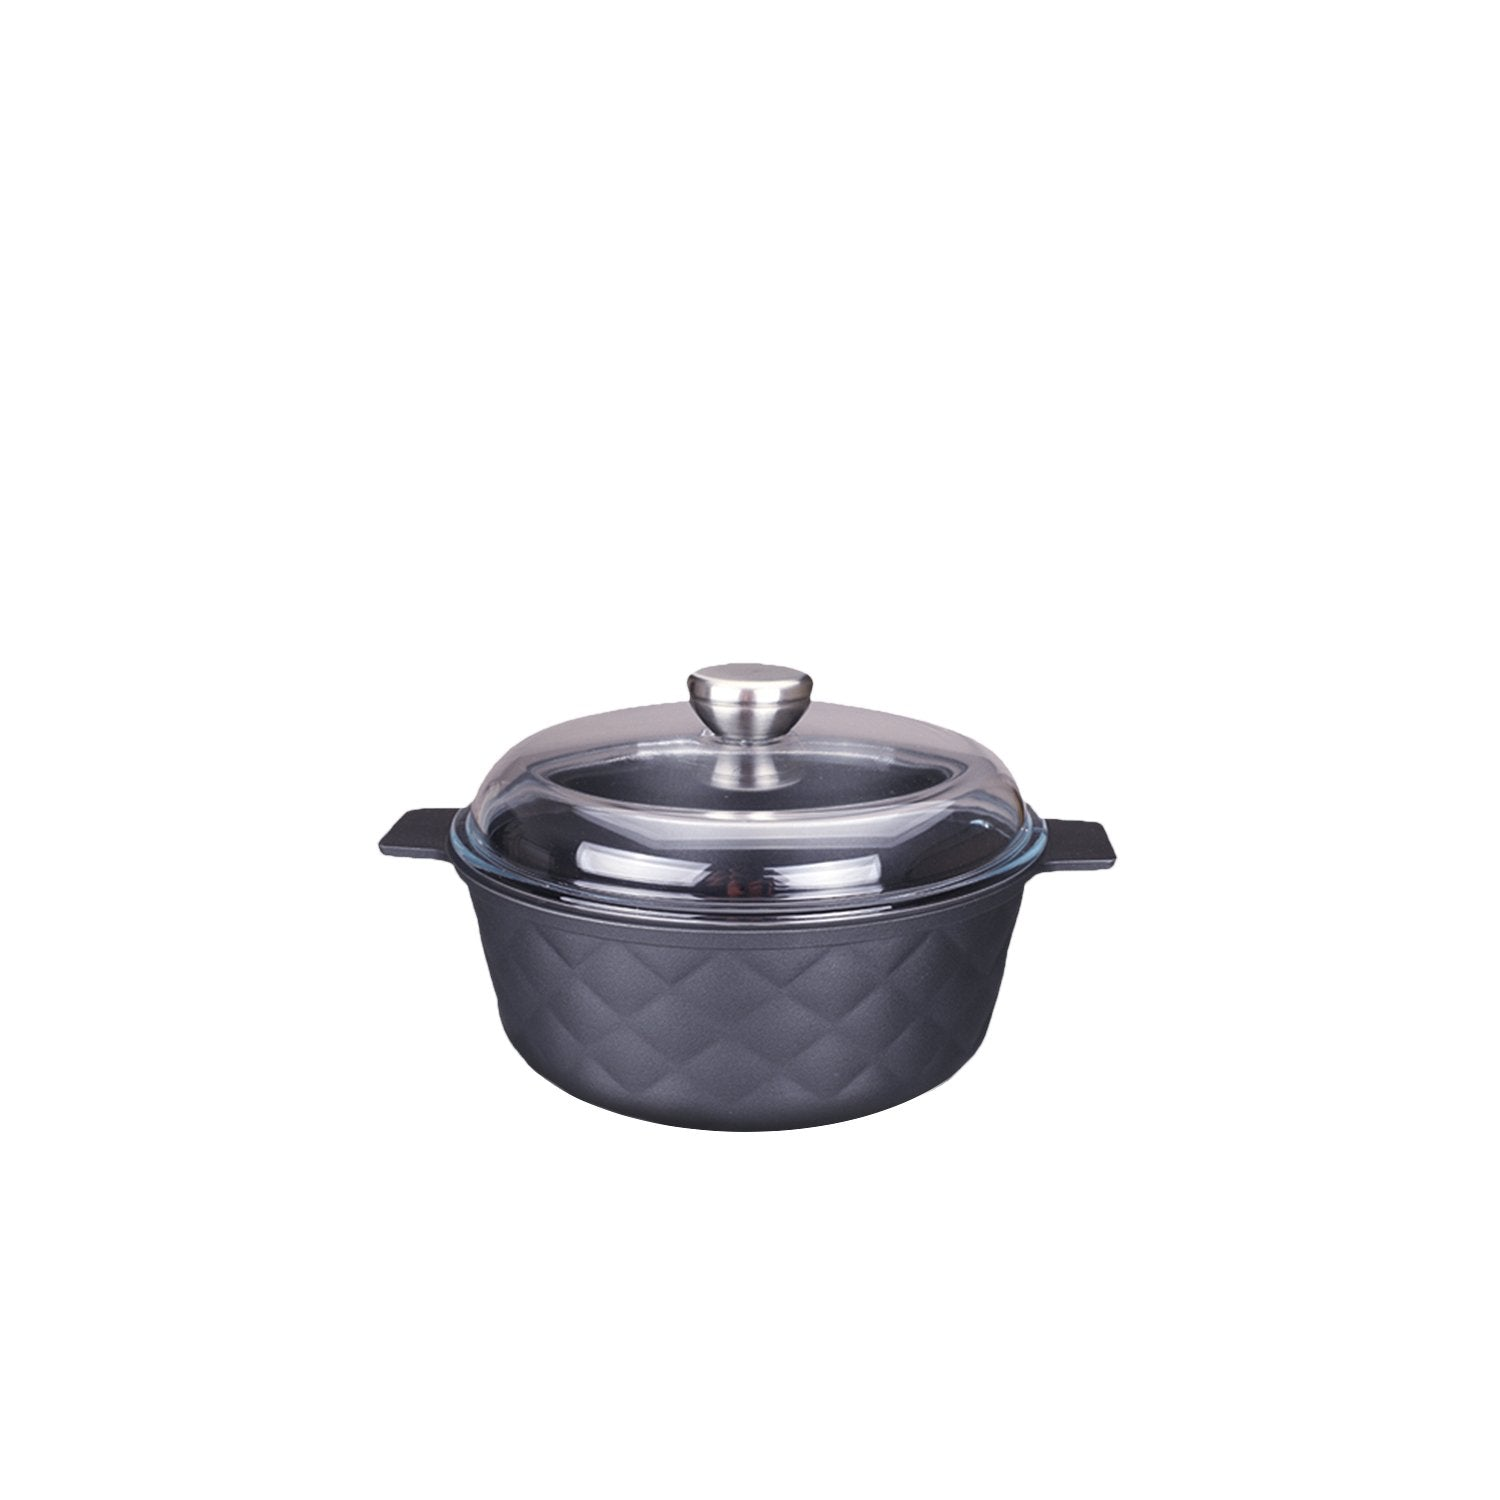 Aluminum Greblon C2 Non-Stick Heat Resistant Coating Full Induction Cassarole Pan with Glass Lid